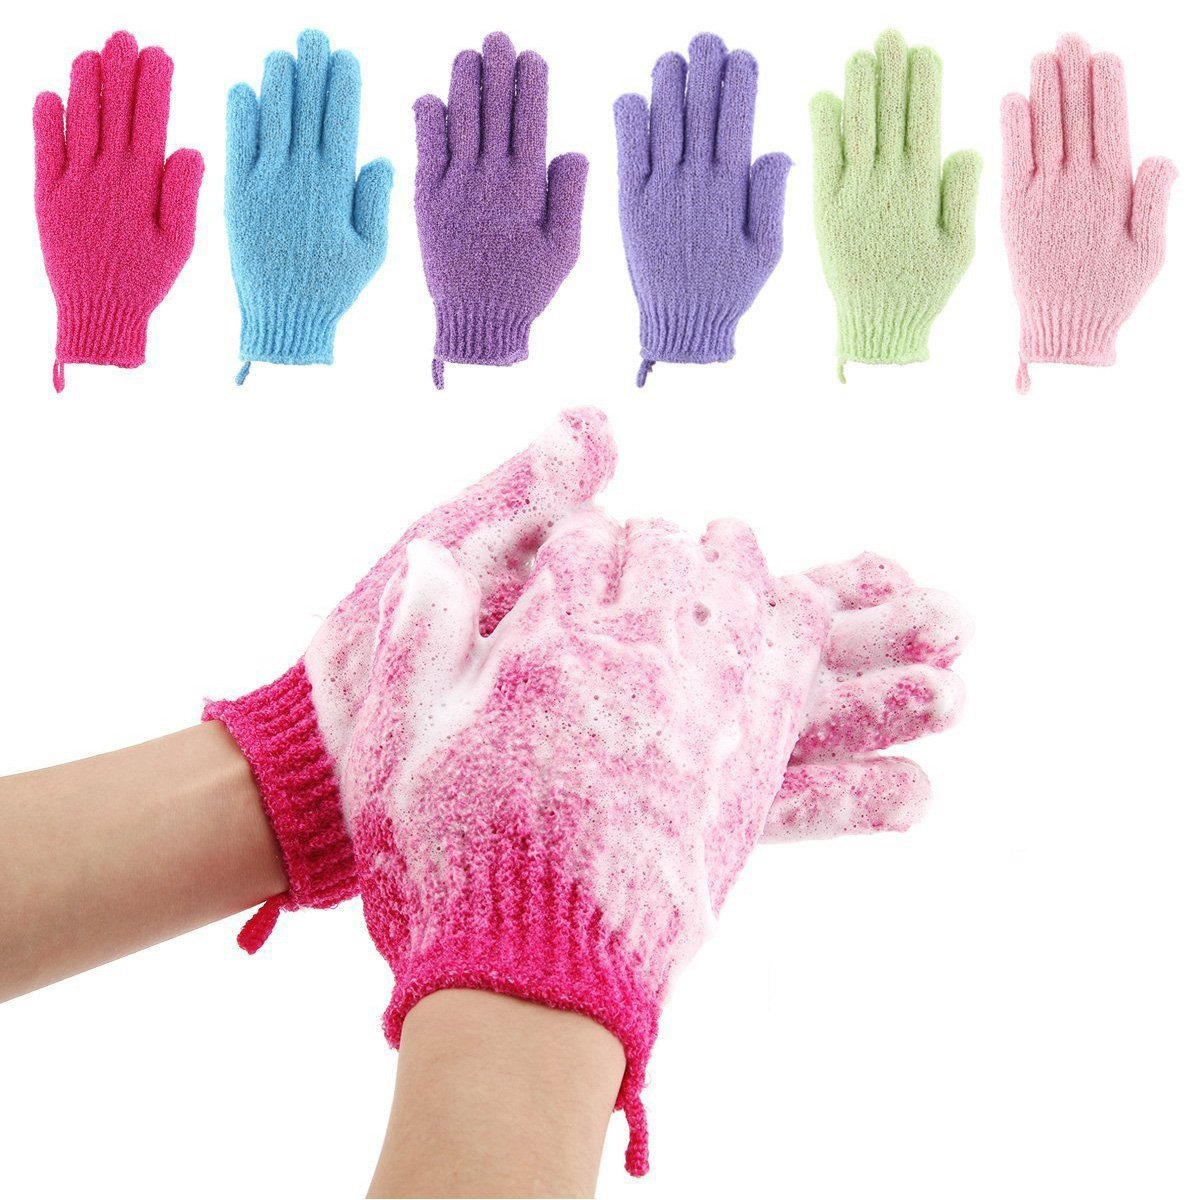 Codream 6 Pair Bath Exfoliating Gloves Nylon Shower Gloves, Bath Scrubber, Body Spa Massage Dead Skin Cell Remover Valentine's Gifts for Women Men